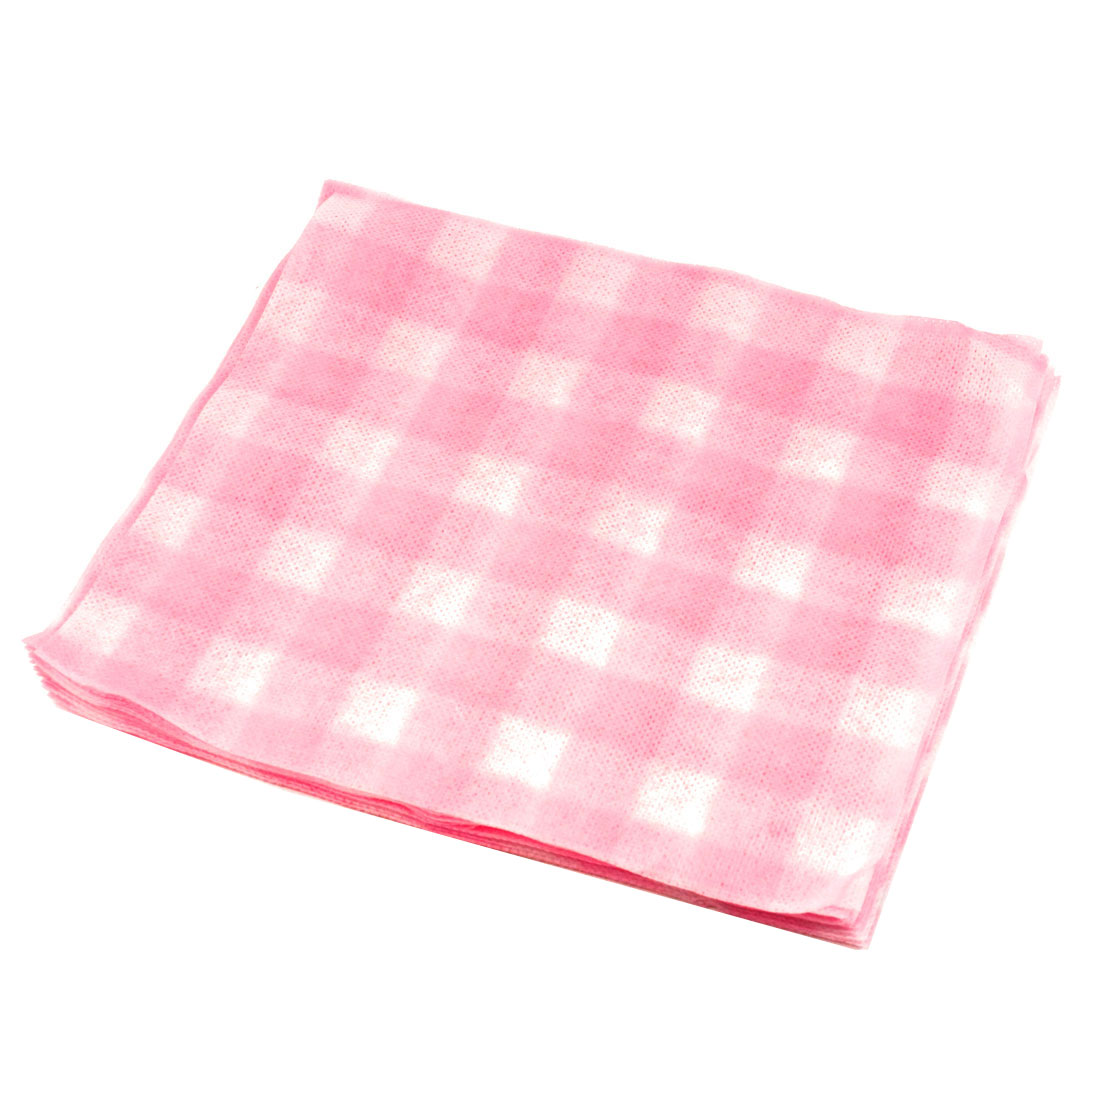 22.6cm x 20.2cm Pink White Face Cleaning Disposable Towels 20 Pcs